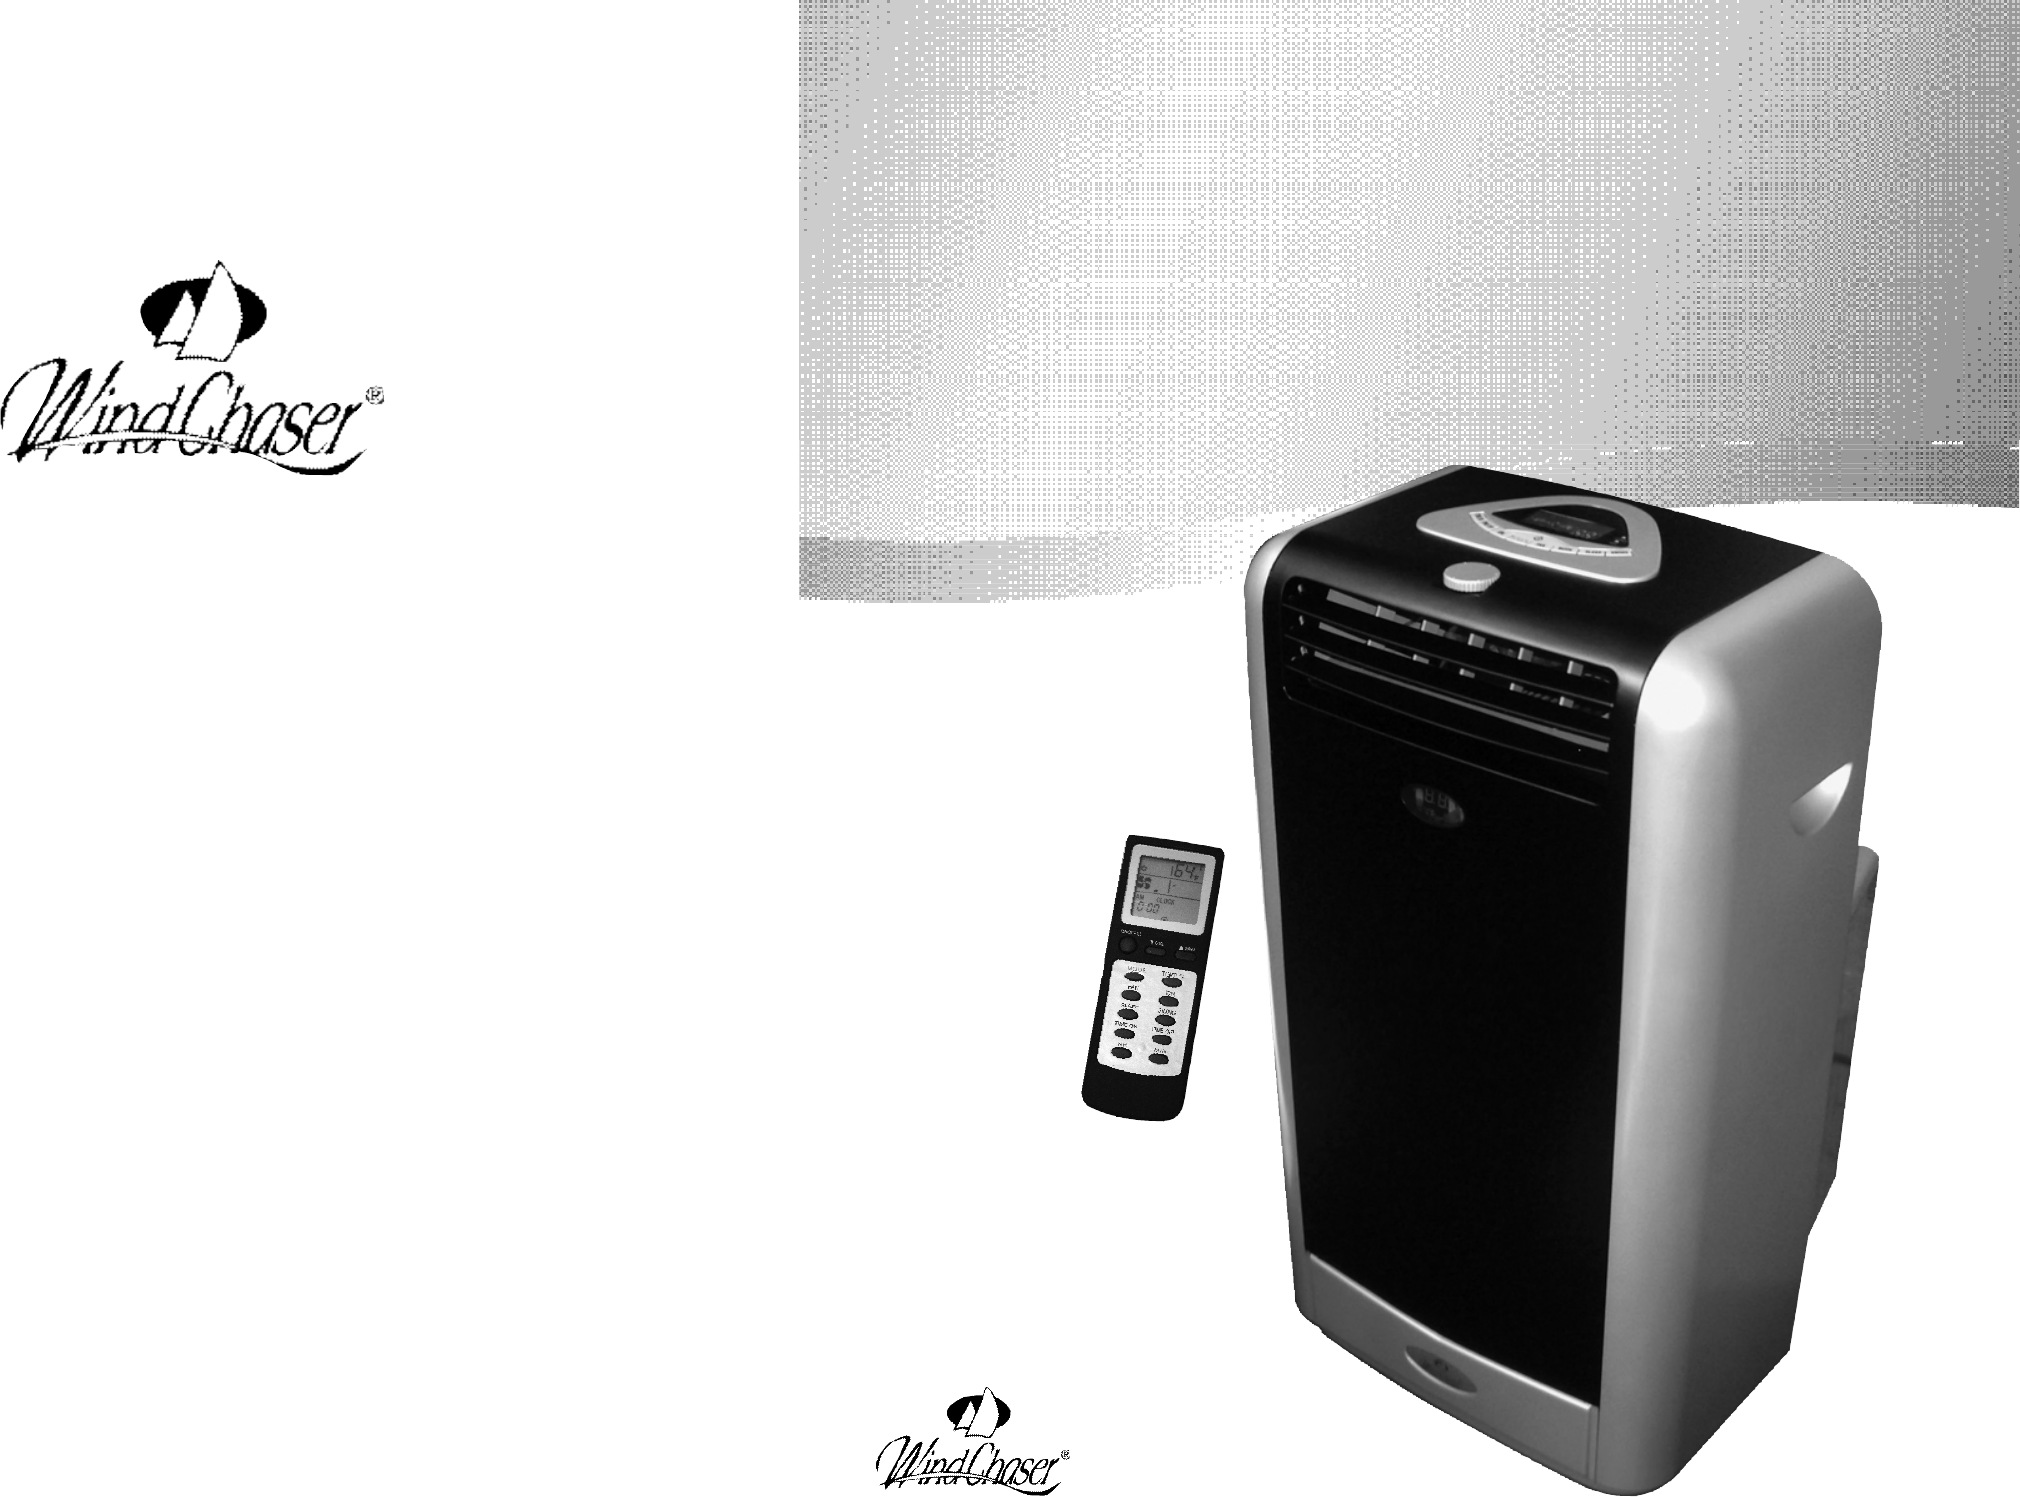 Portable Air Conditioner Troubleshooting Windchaser Products Air Conditioner Pacrwc Hp User Guide